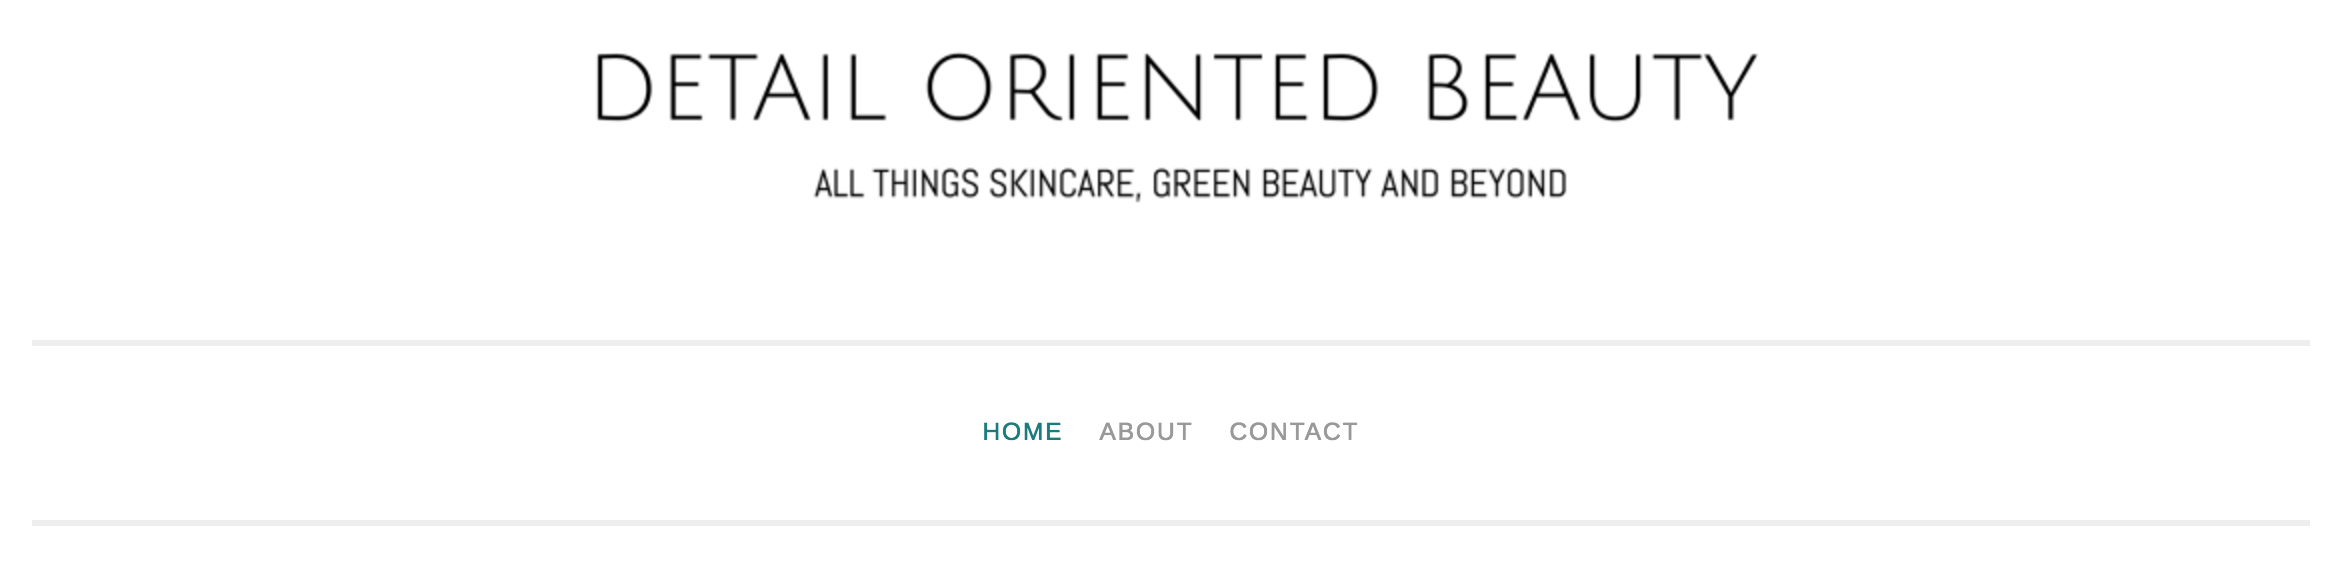 If you haven't looked into this blog, I must recommend you do so! Image Source:https://detailorientedbeauty.com/